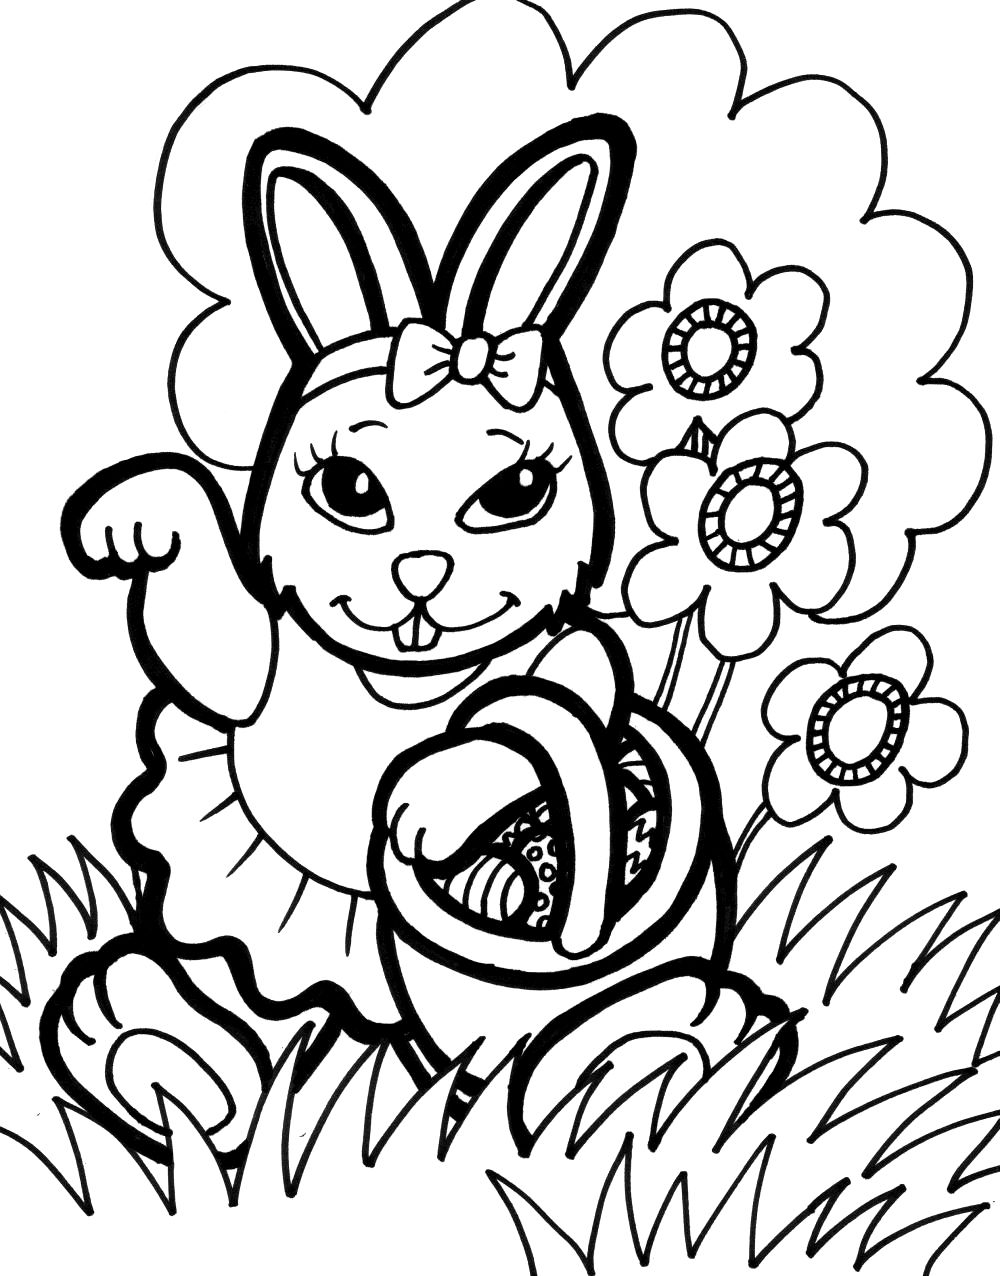 Bunny Coloring Pages Best Coloring Pages For Kids Bunny Coloring Pages Easter Bunny Colouring Cartoon Coloring Pages